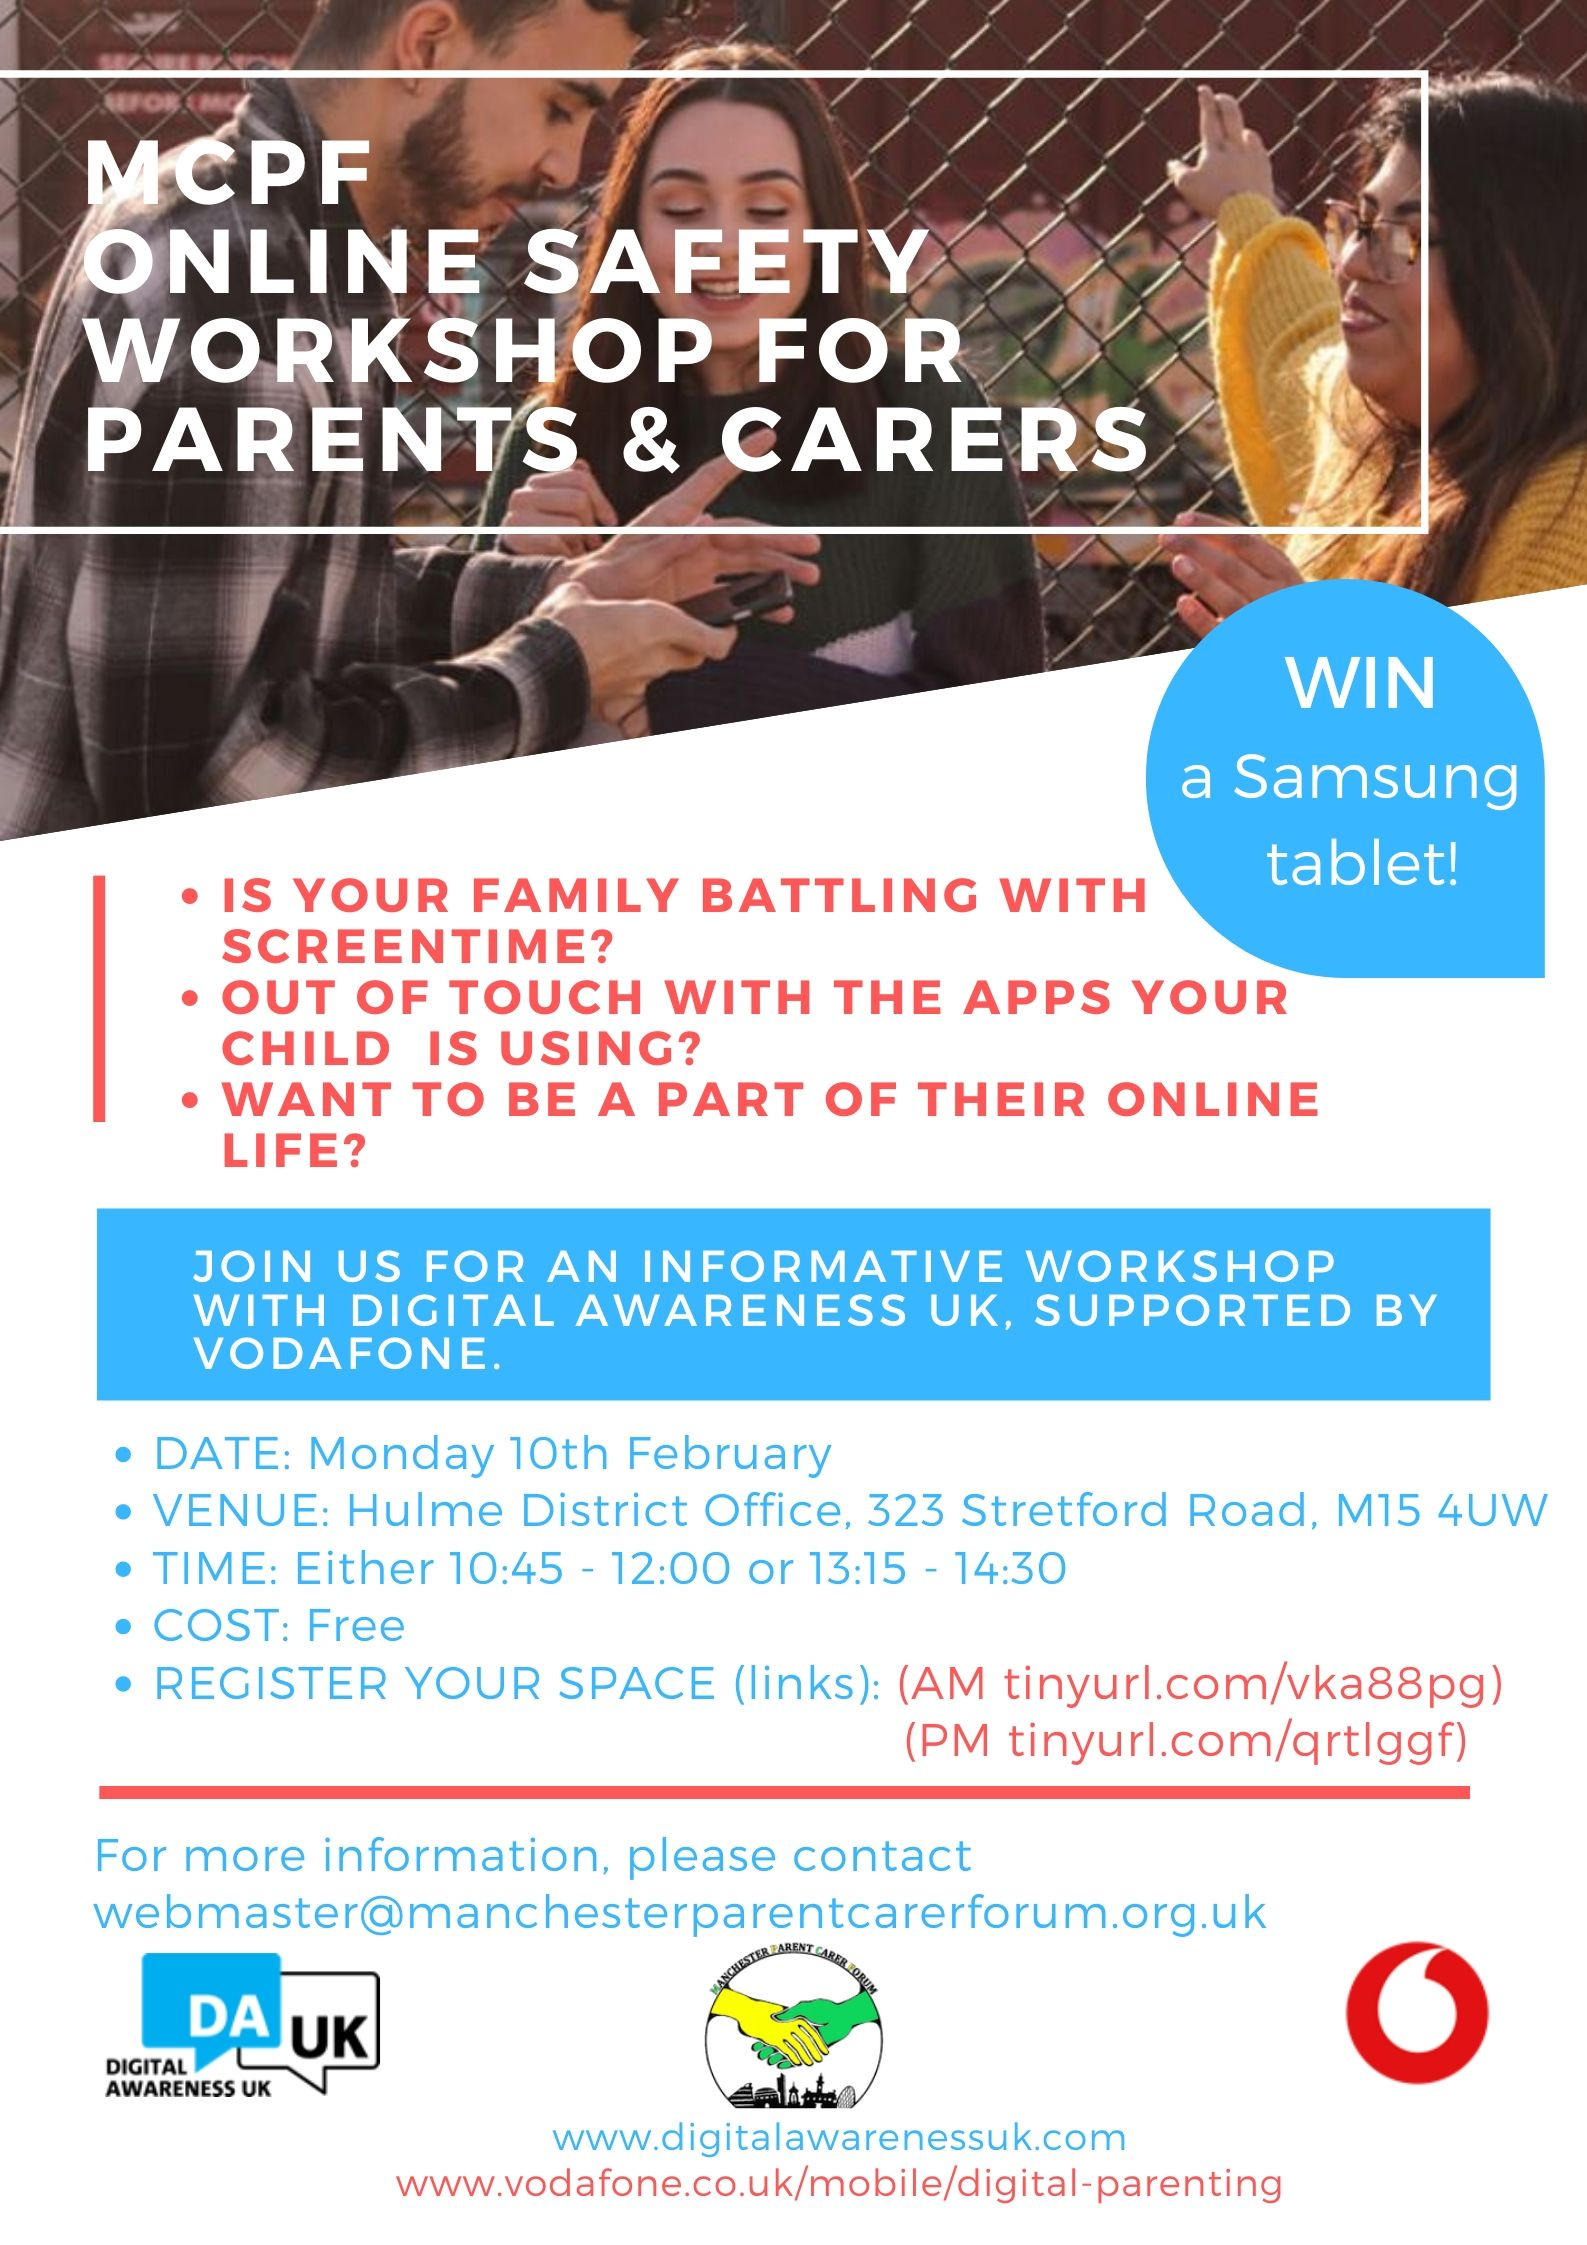 Poster for the MPCF Online Safety Course for Parents & Carers, with details of the event in text, a photo of 3 adults looking at a smartphone, and the logos of MPCF, course providers Digital Awareness UK, and their sponsor Vodafone